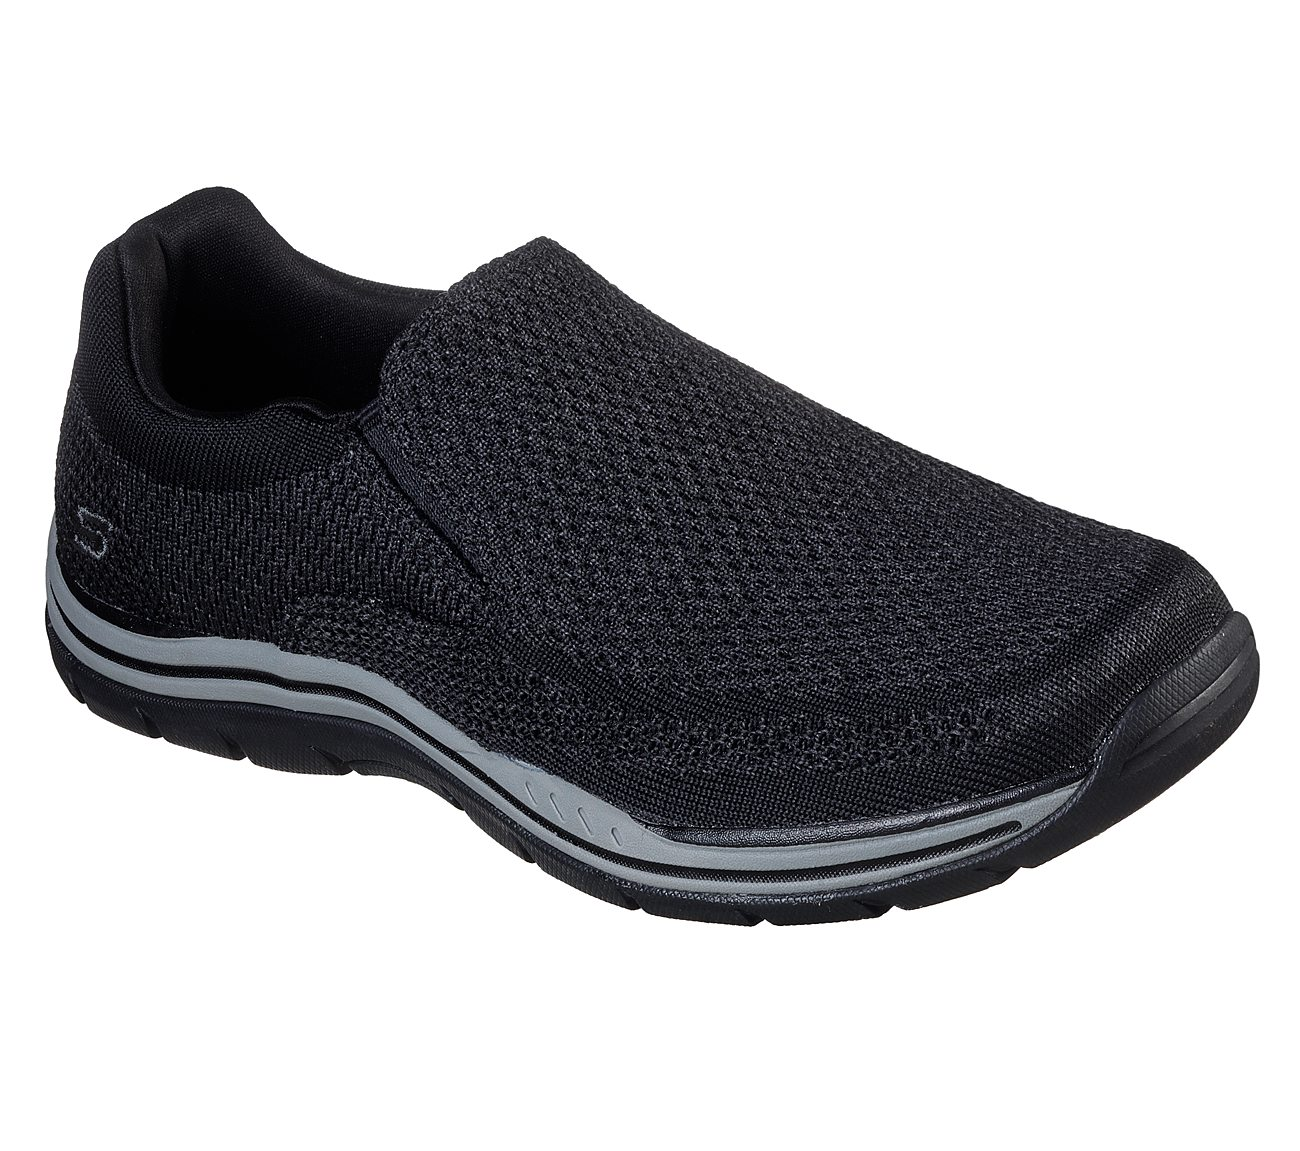 Expected - Gomel SKECHERS Relaxed Fit Shoes